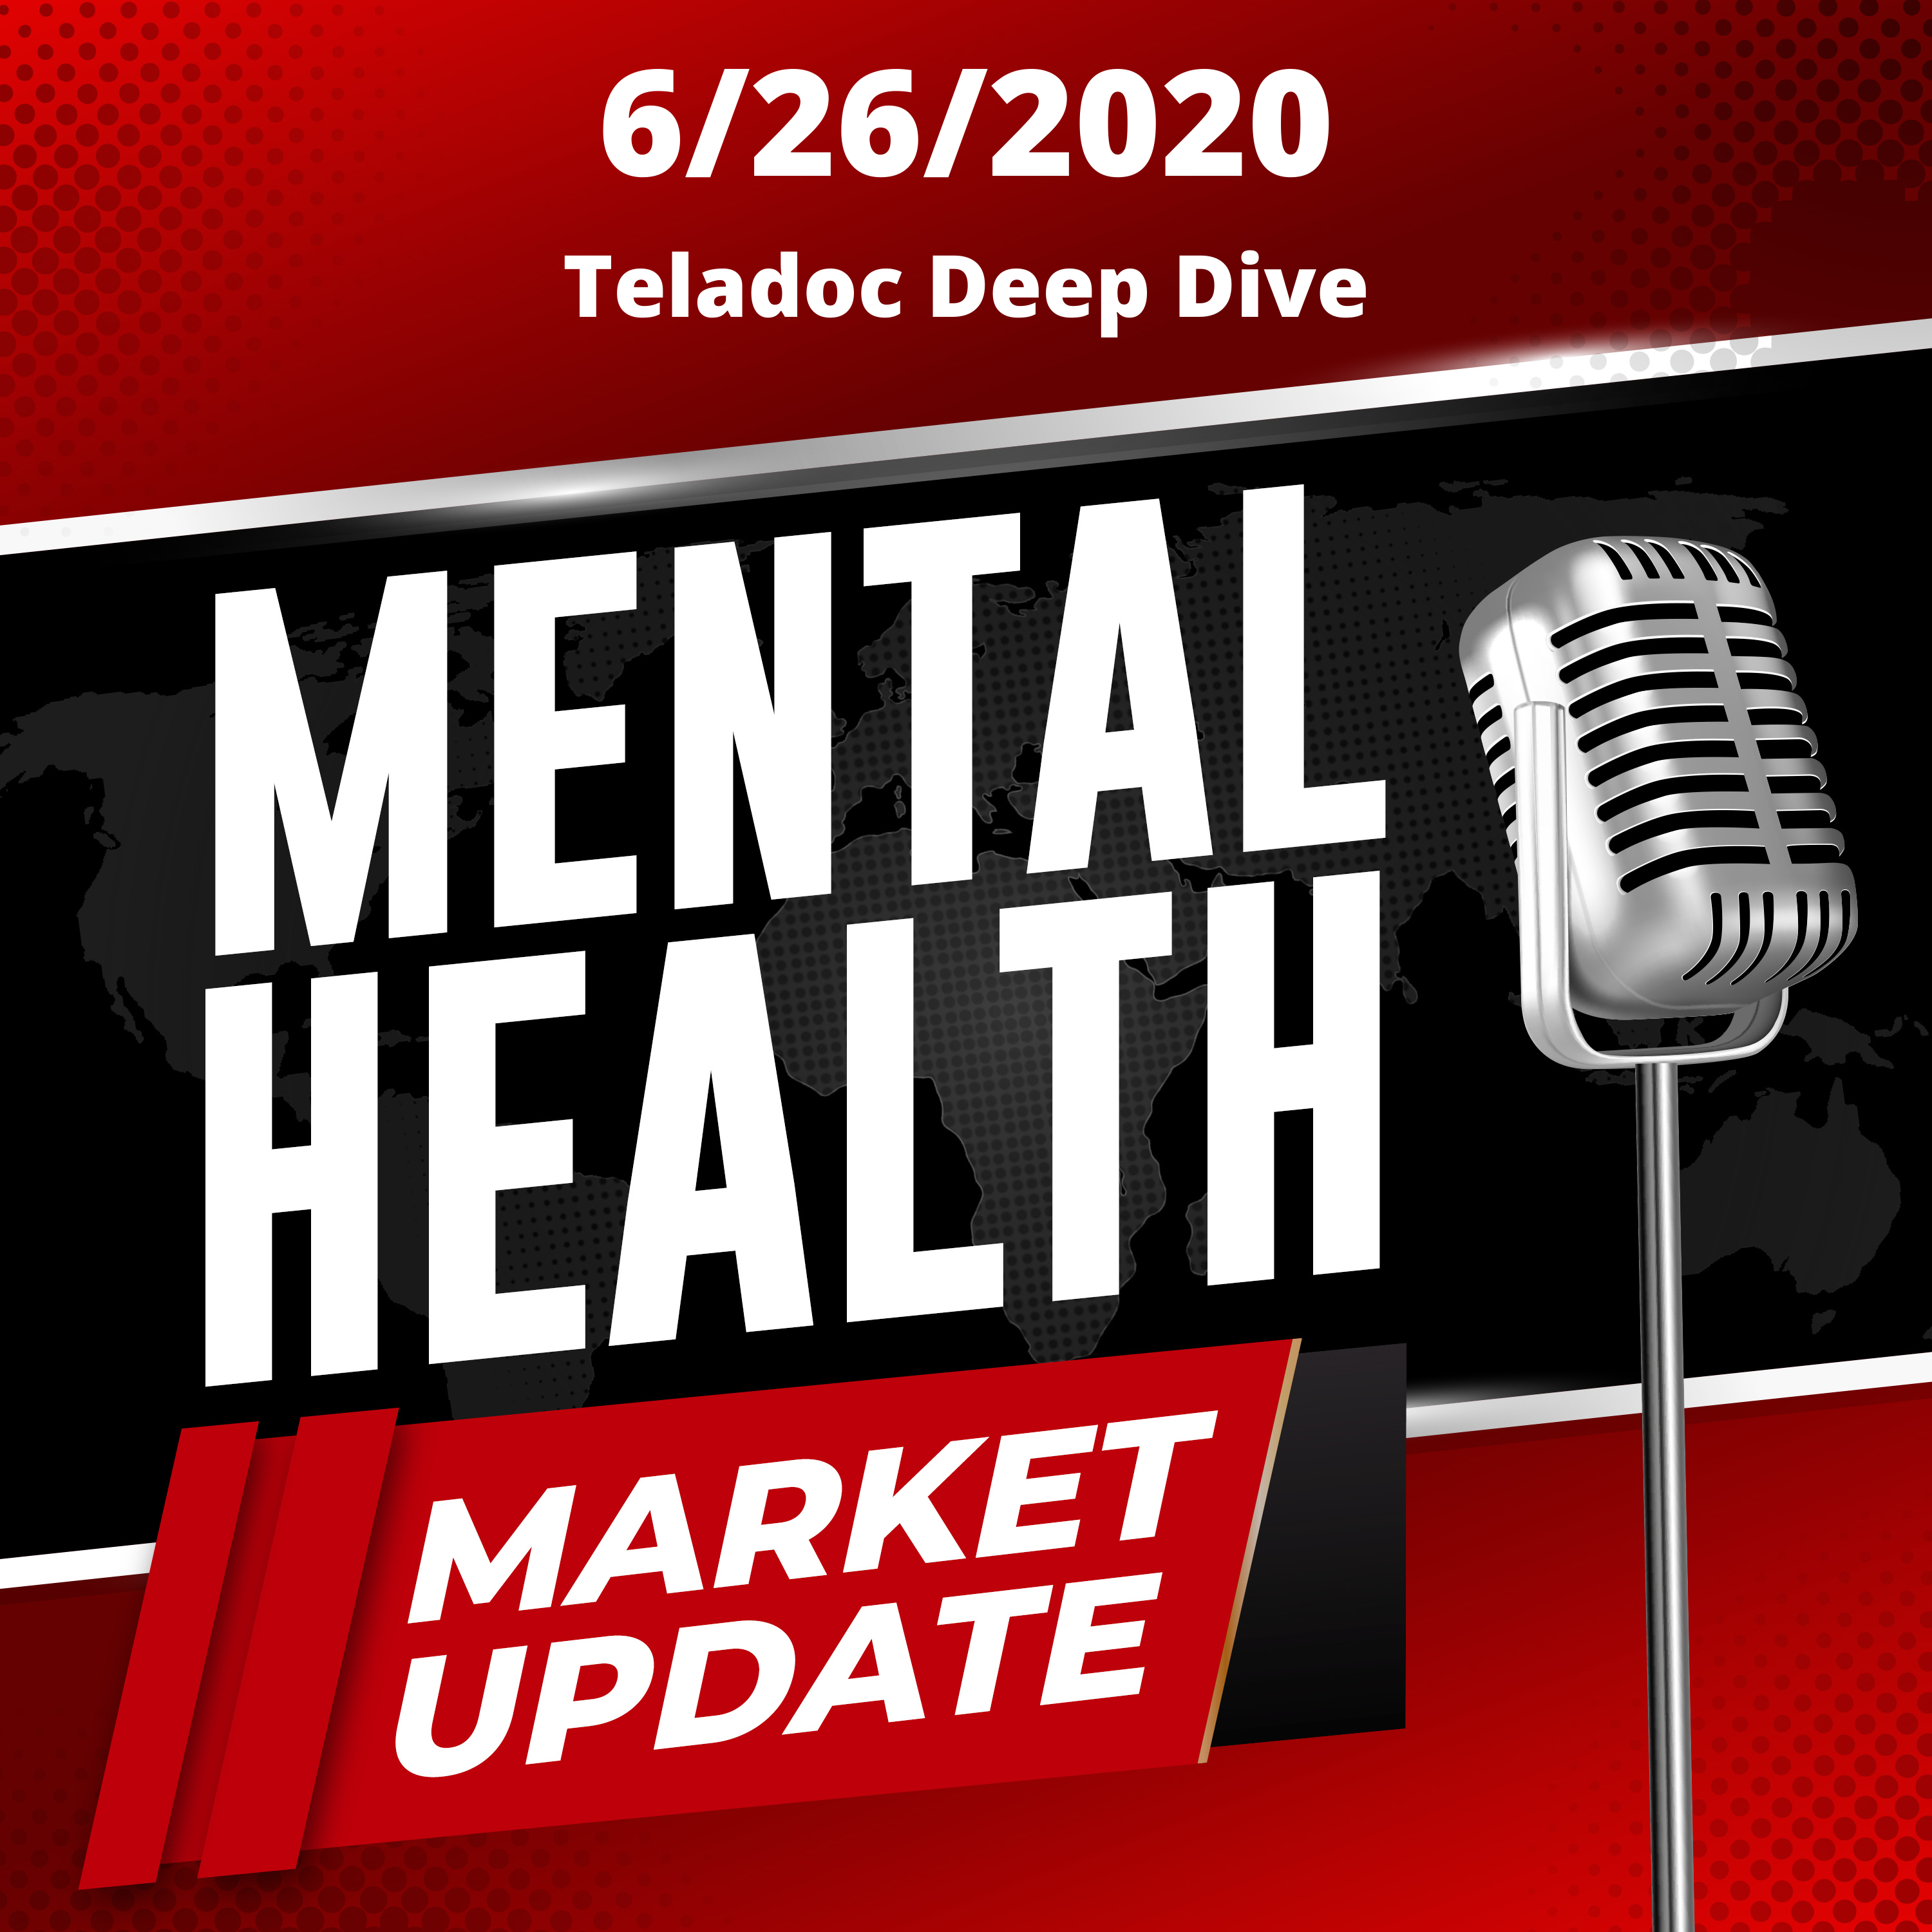 Stigma Podcast - Mental Health - #56 - Teladoc Analysis - Company Overview, Valuation, M&A and Positioning on the Mental Health Market Update 6/26/2020